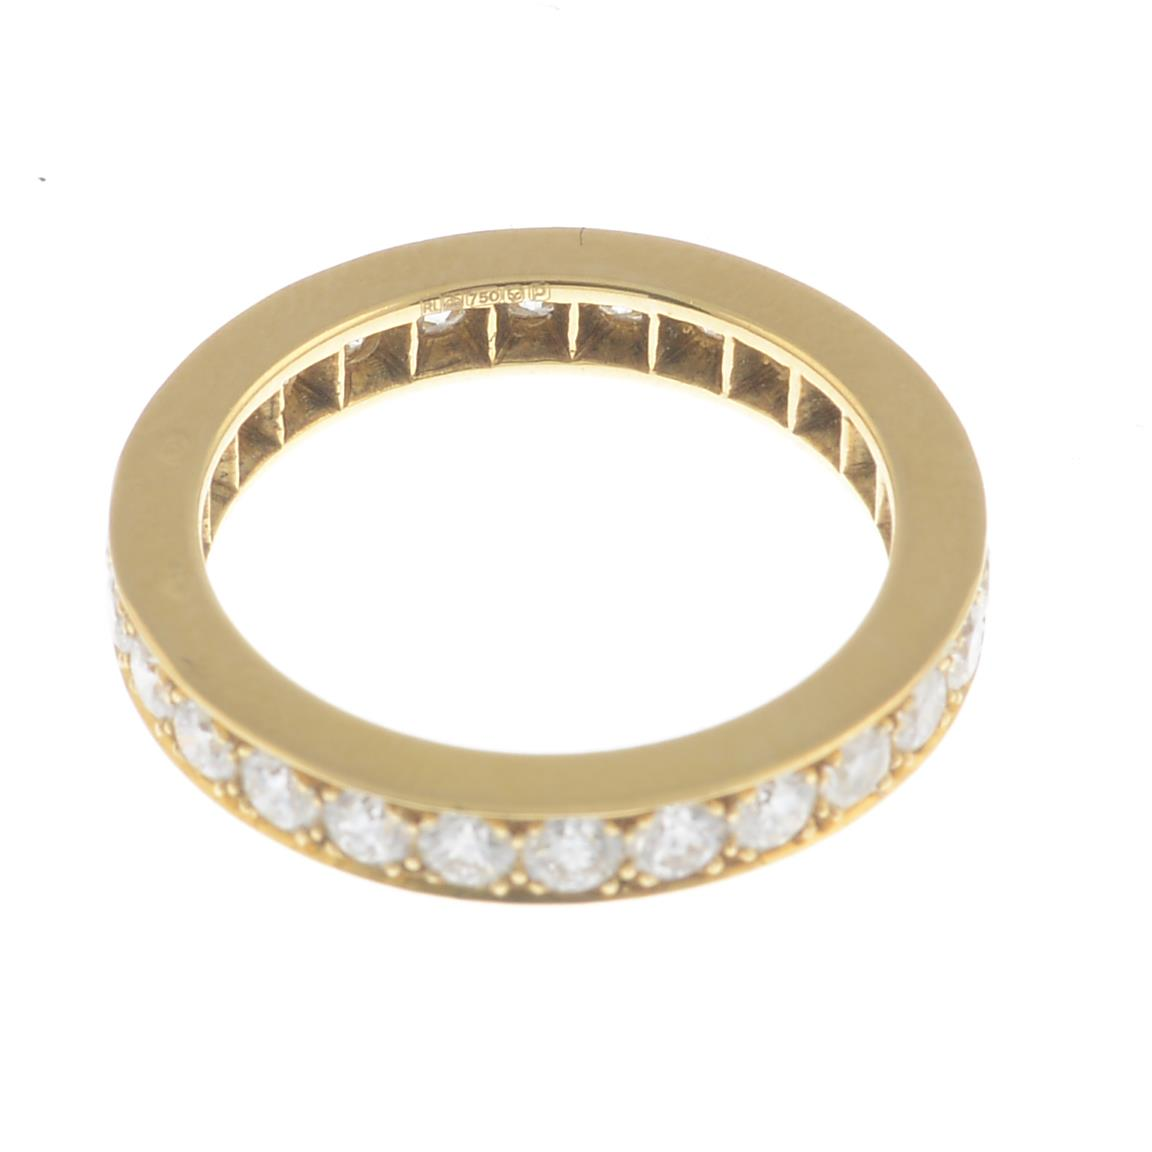 Lot 11 - An 18ct gold diamond full eternity ring.Estimated total diamond weight 1.30cts.Hallmarks for